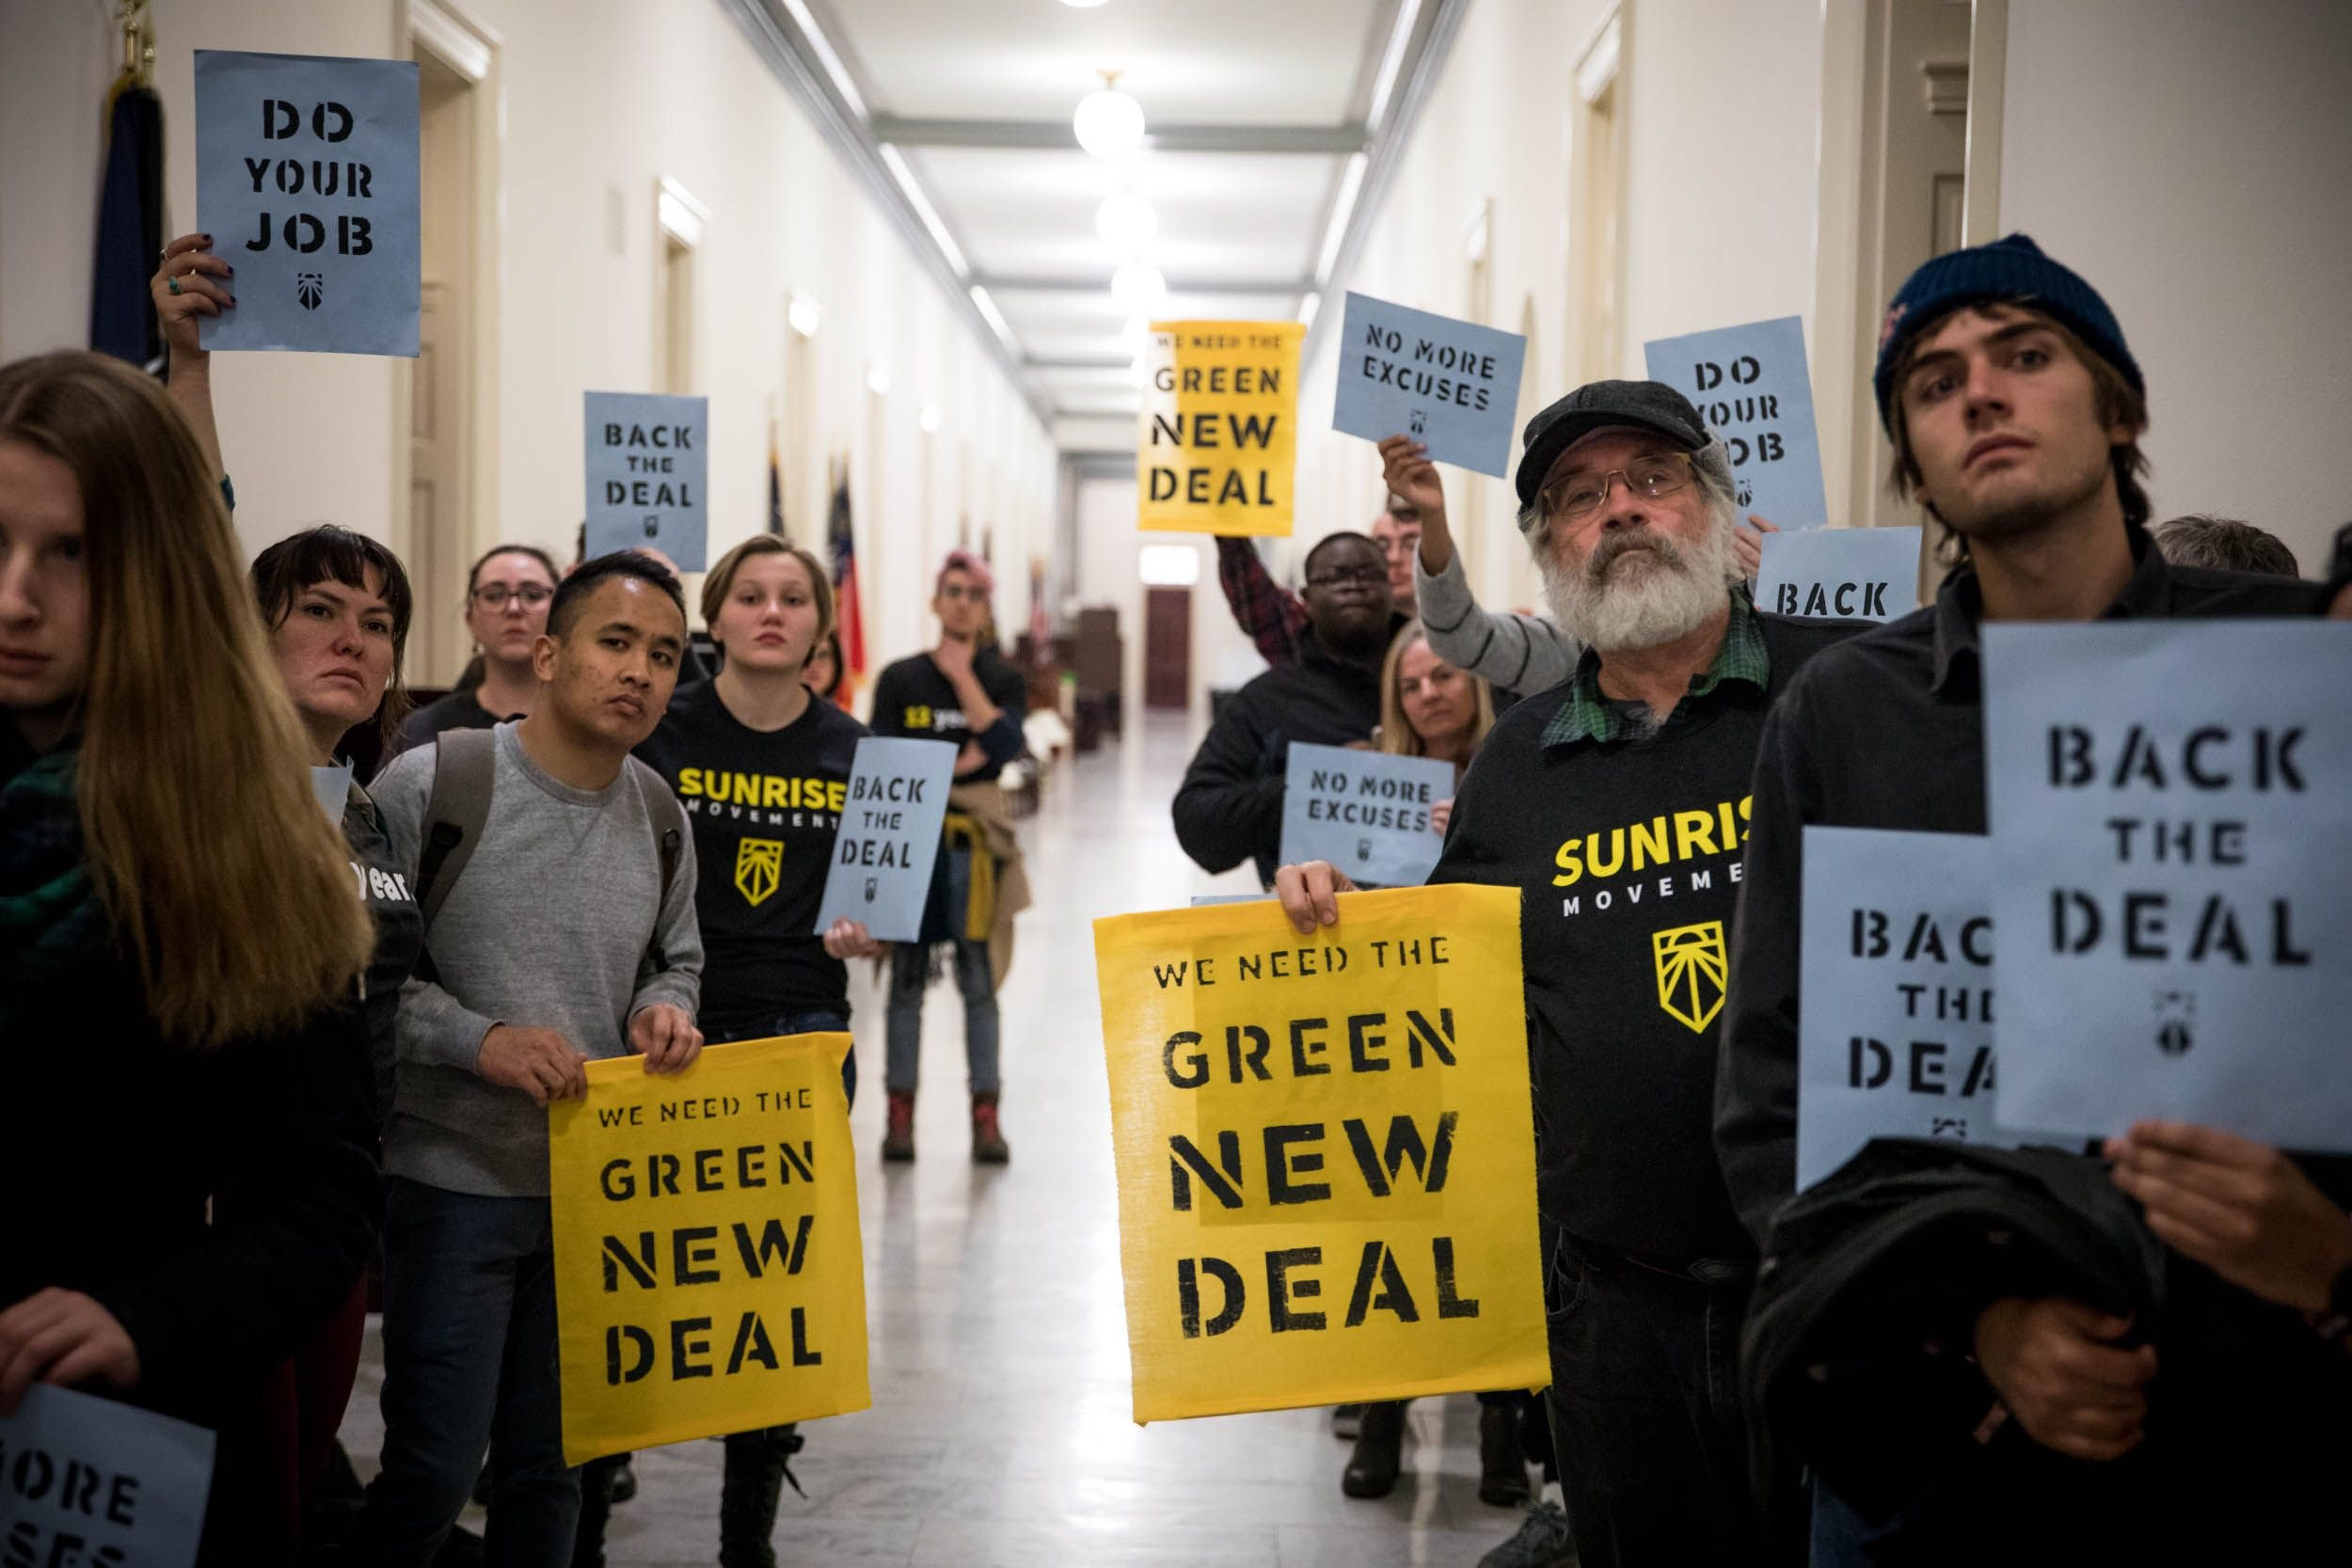 The Green New Deal has a lot of support across party lines.